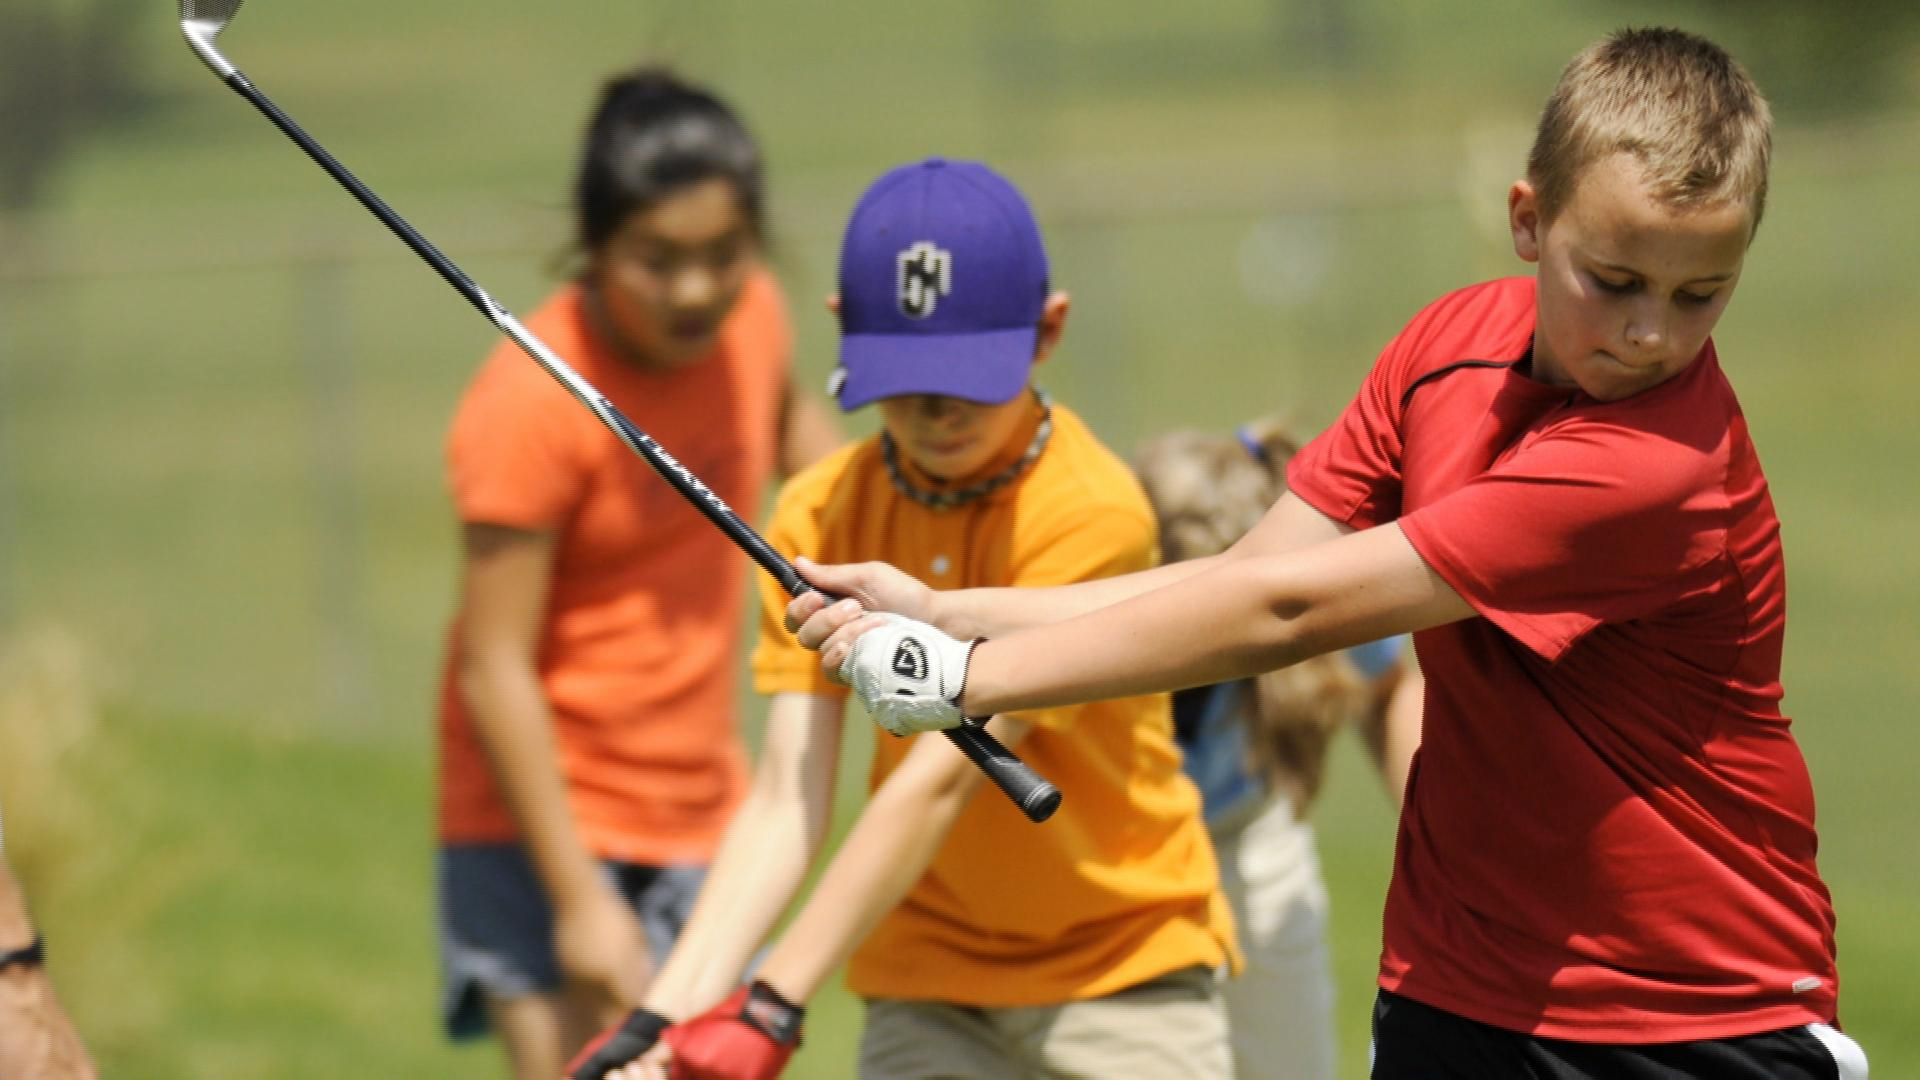 Junior Golf Lessons Kelowna